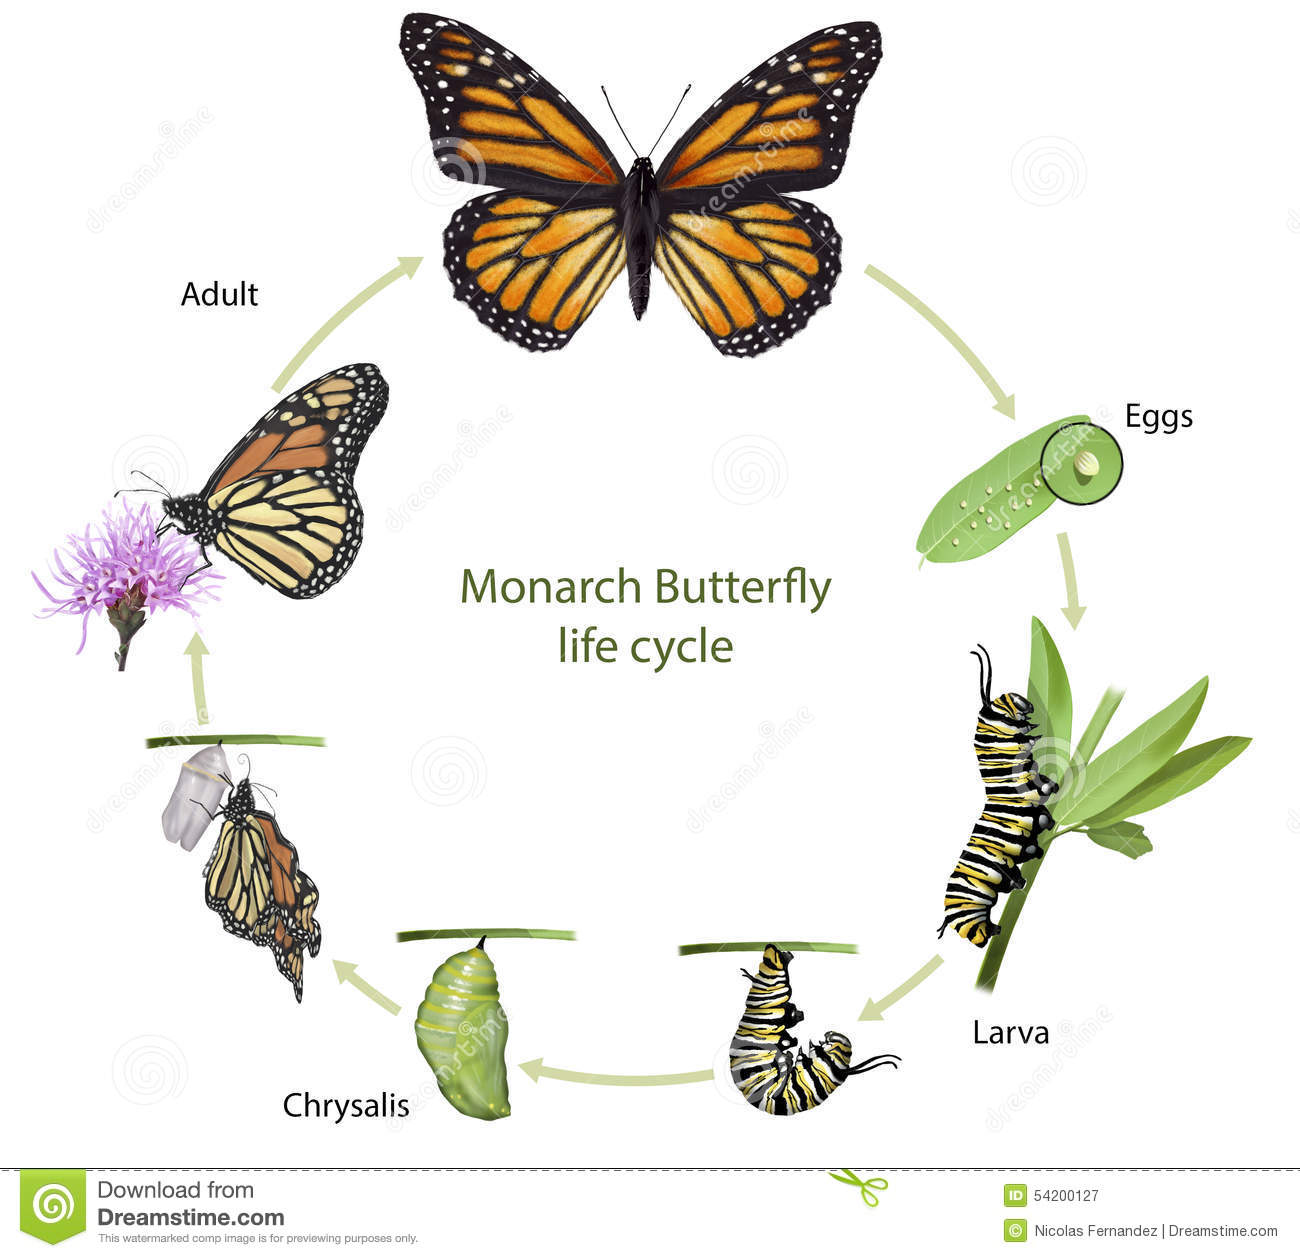 Butterfly Life Cycle / Butterfly Metamorphosis